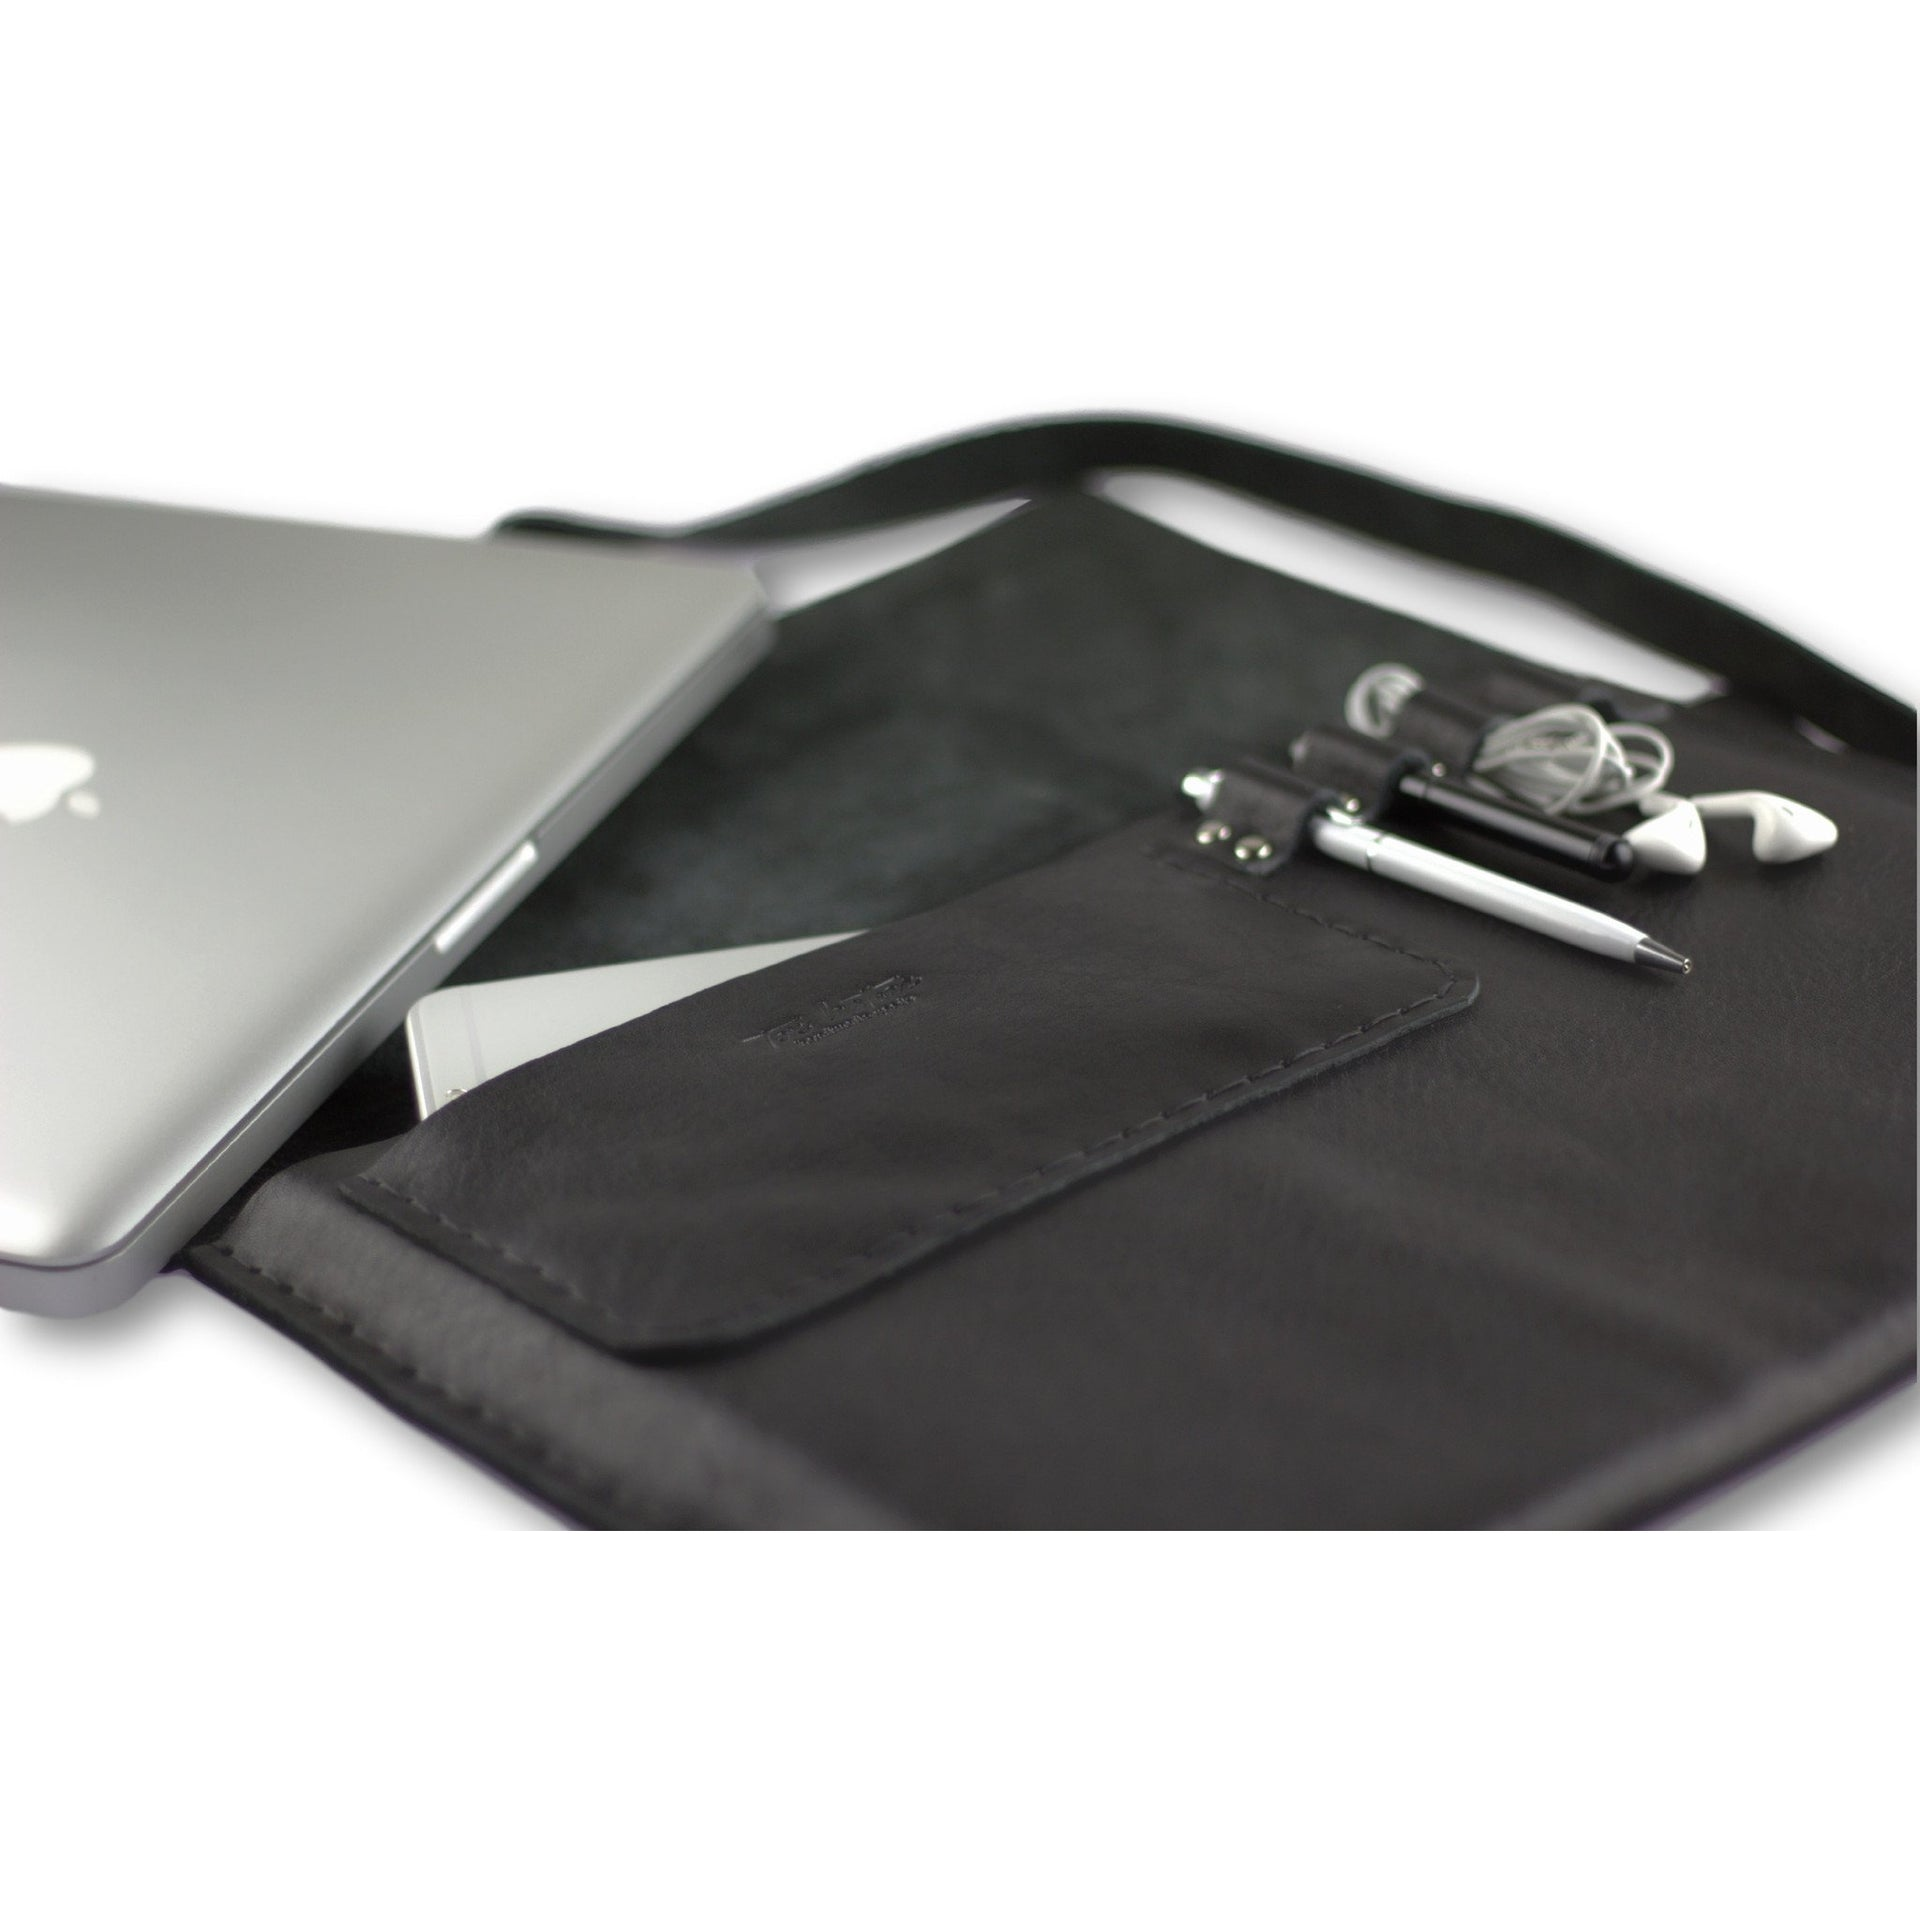 Valer clutch / Macbook case